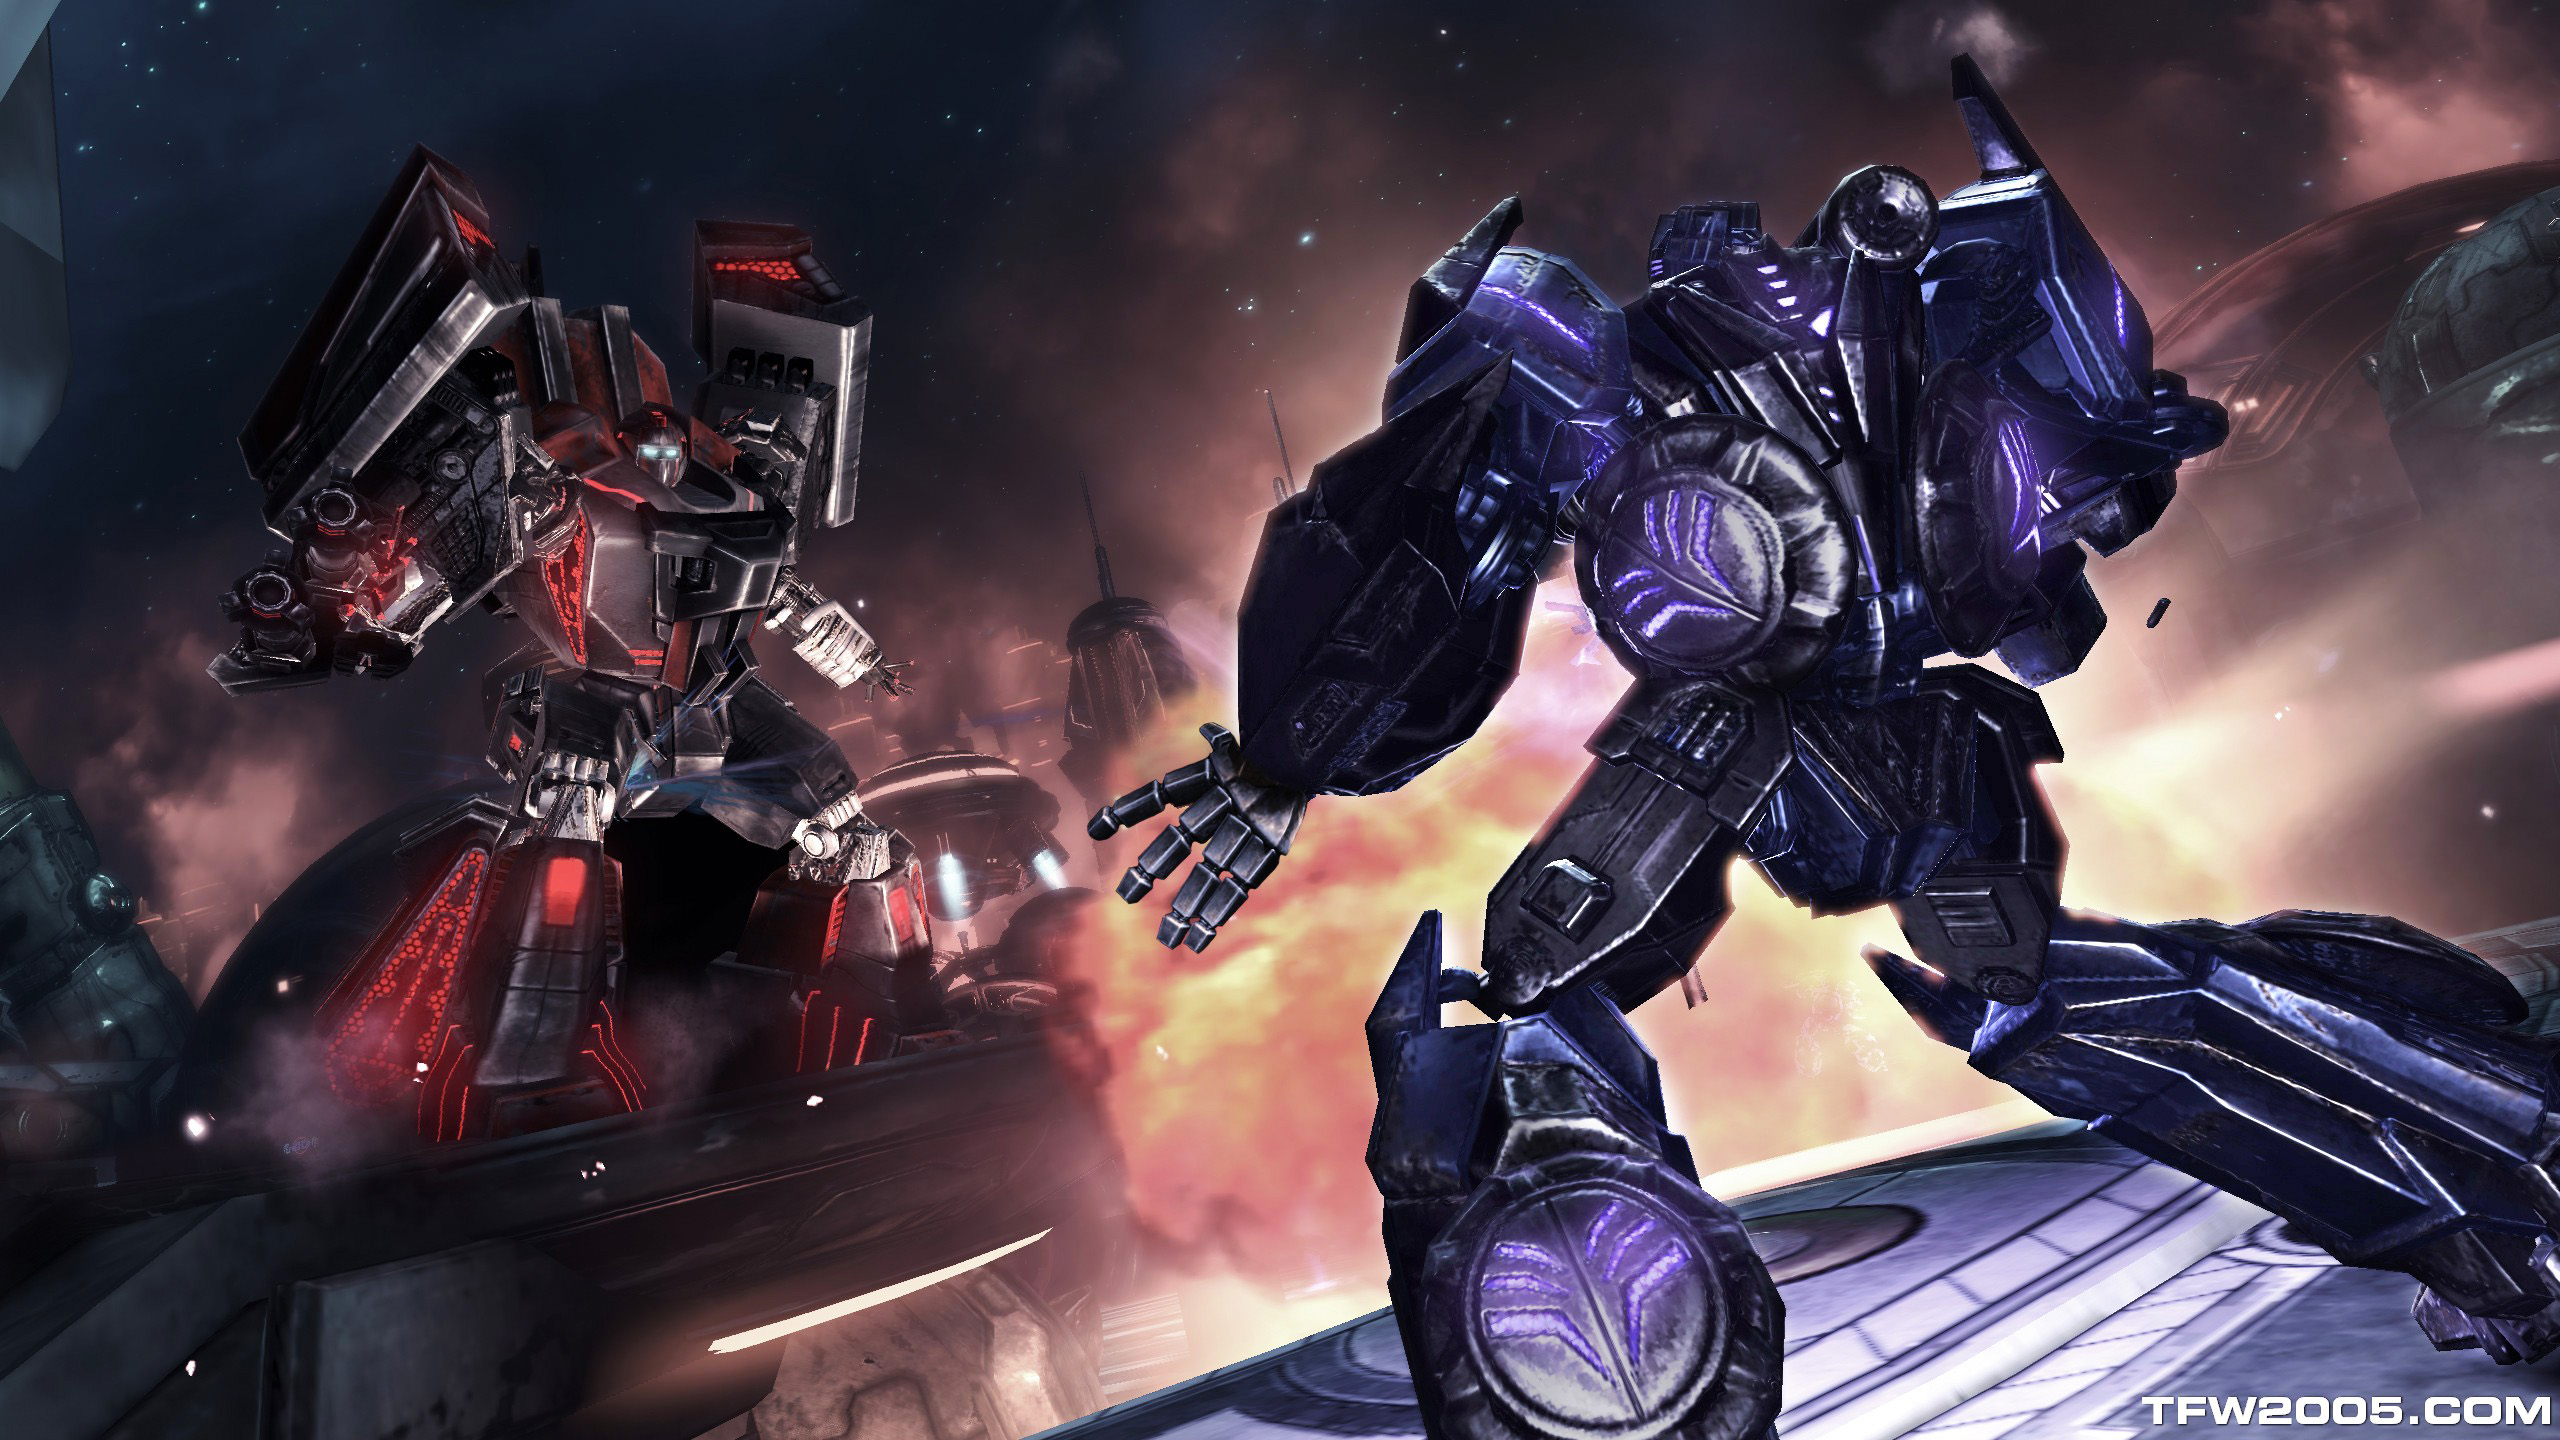 transformers war for cybertron wallpapers (2560 x 1440 pixels